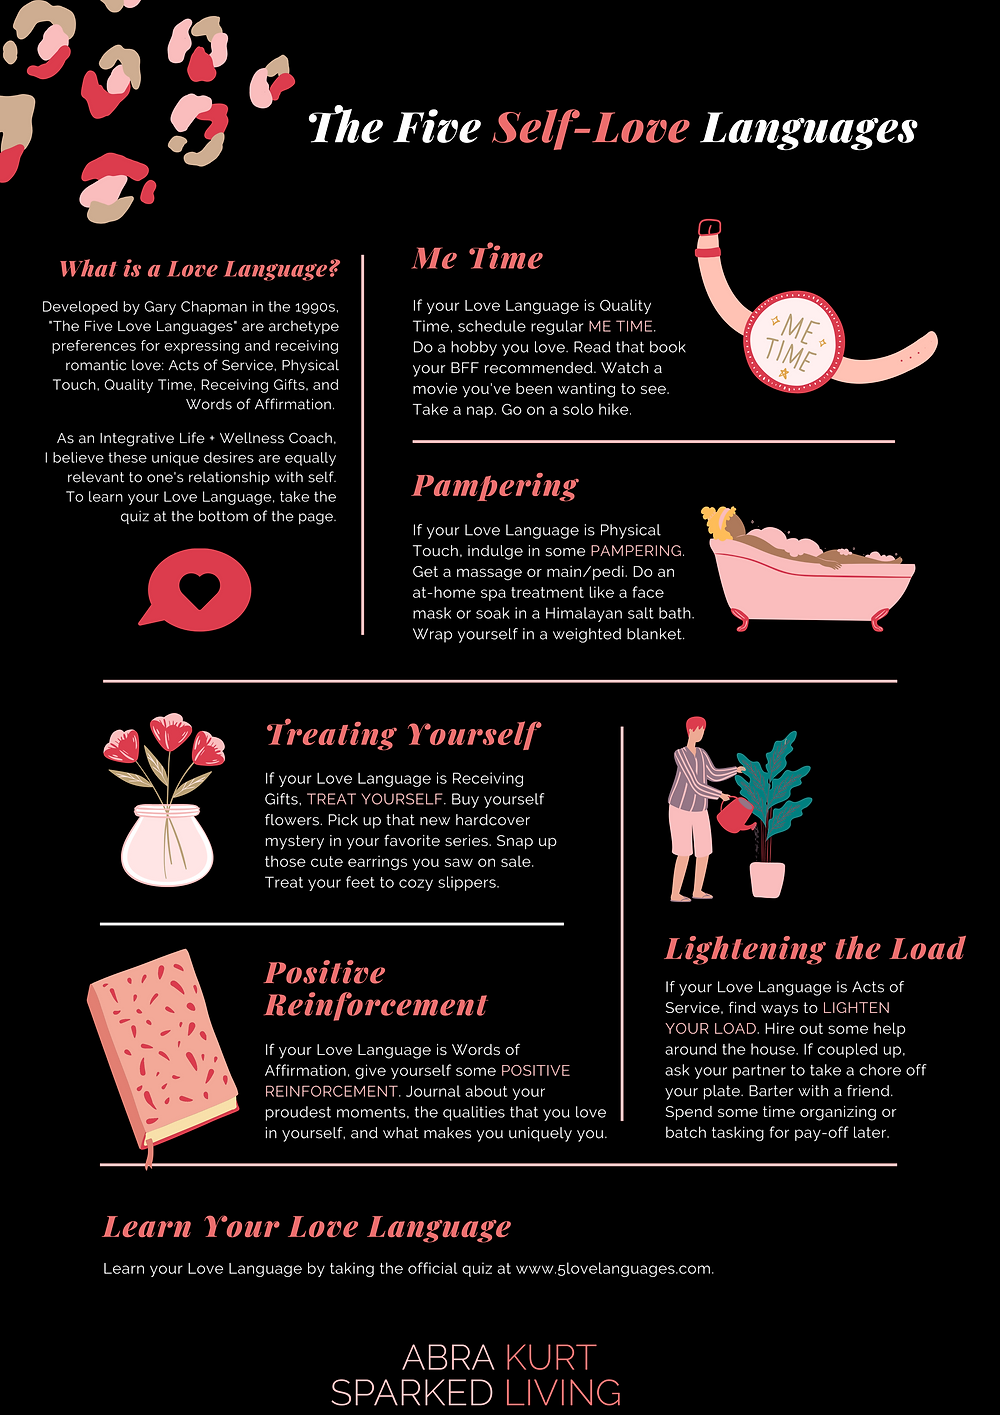 self-love languages, self love tips, love languages, self care tips